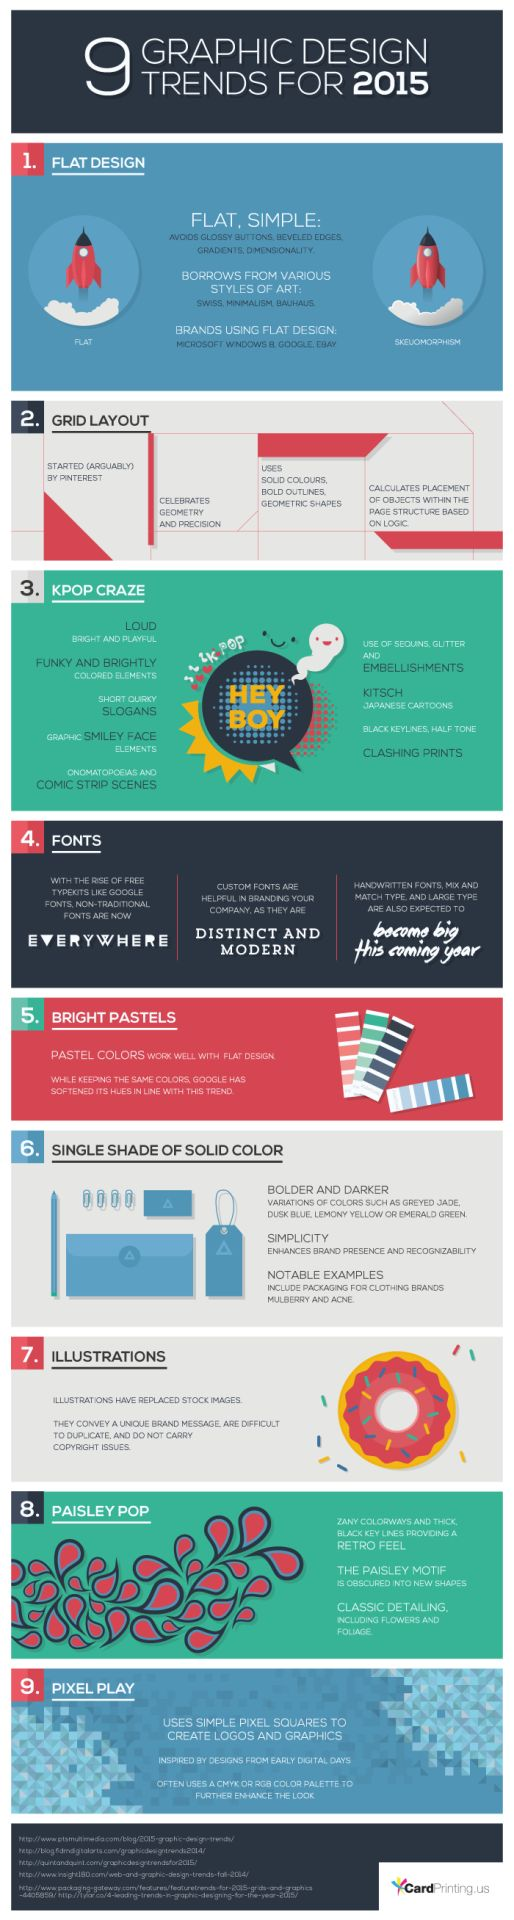 9 #GraphicDesign #Trends for 2015 [ #infographic ]